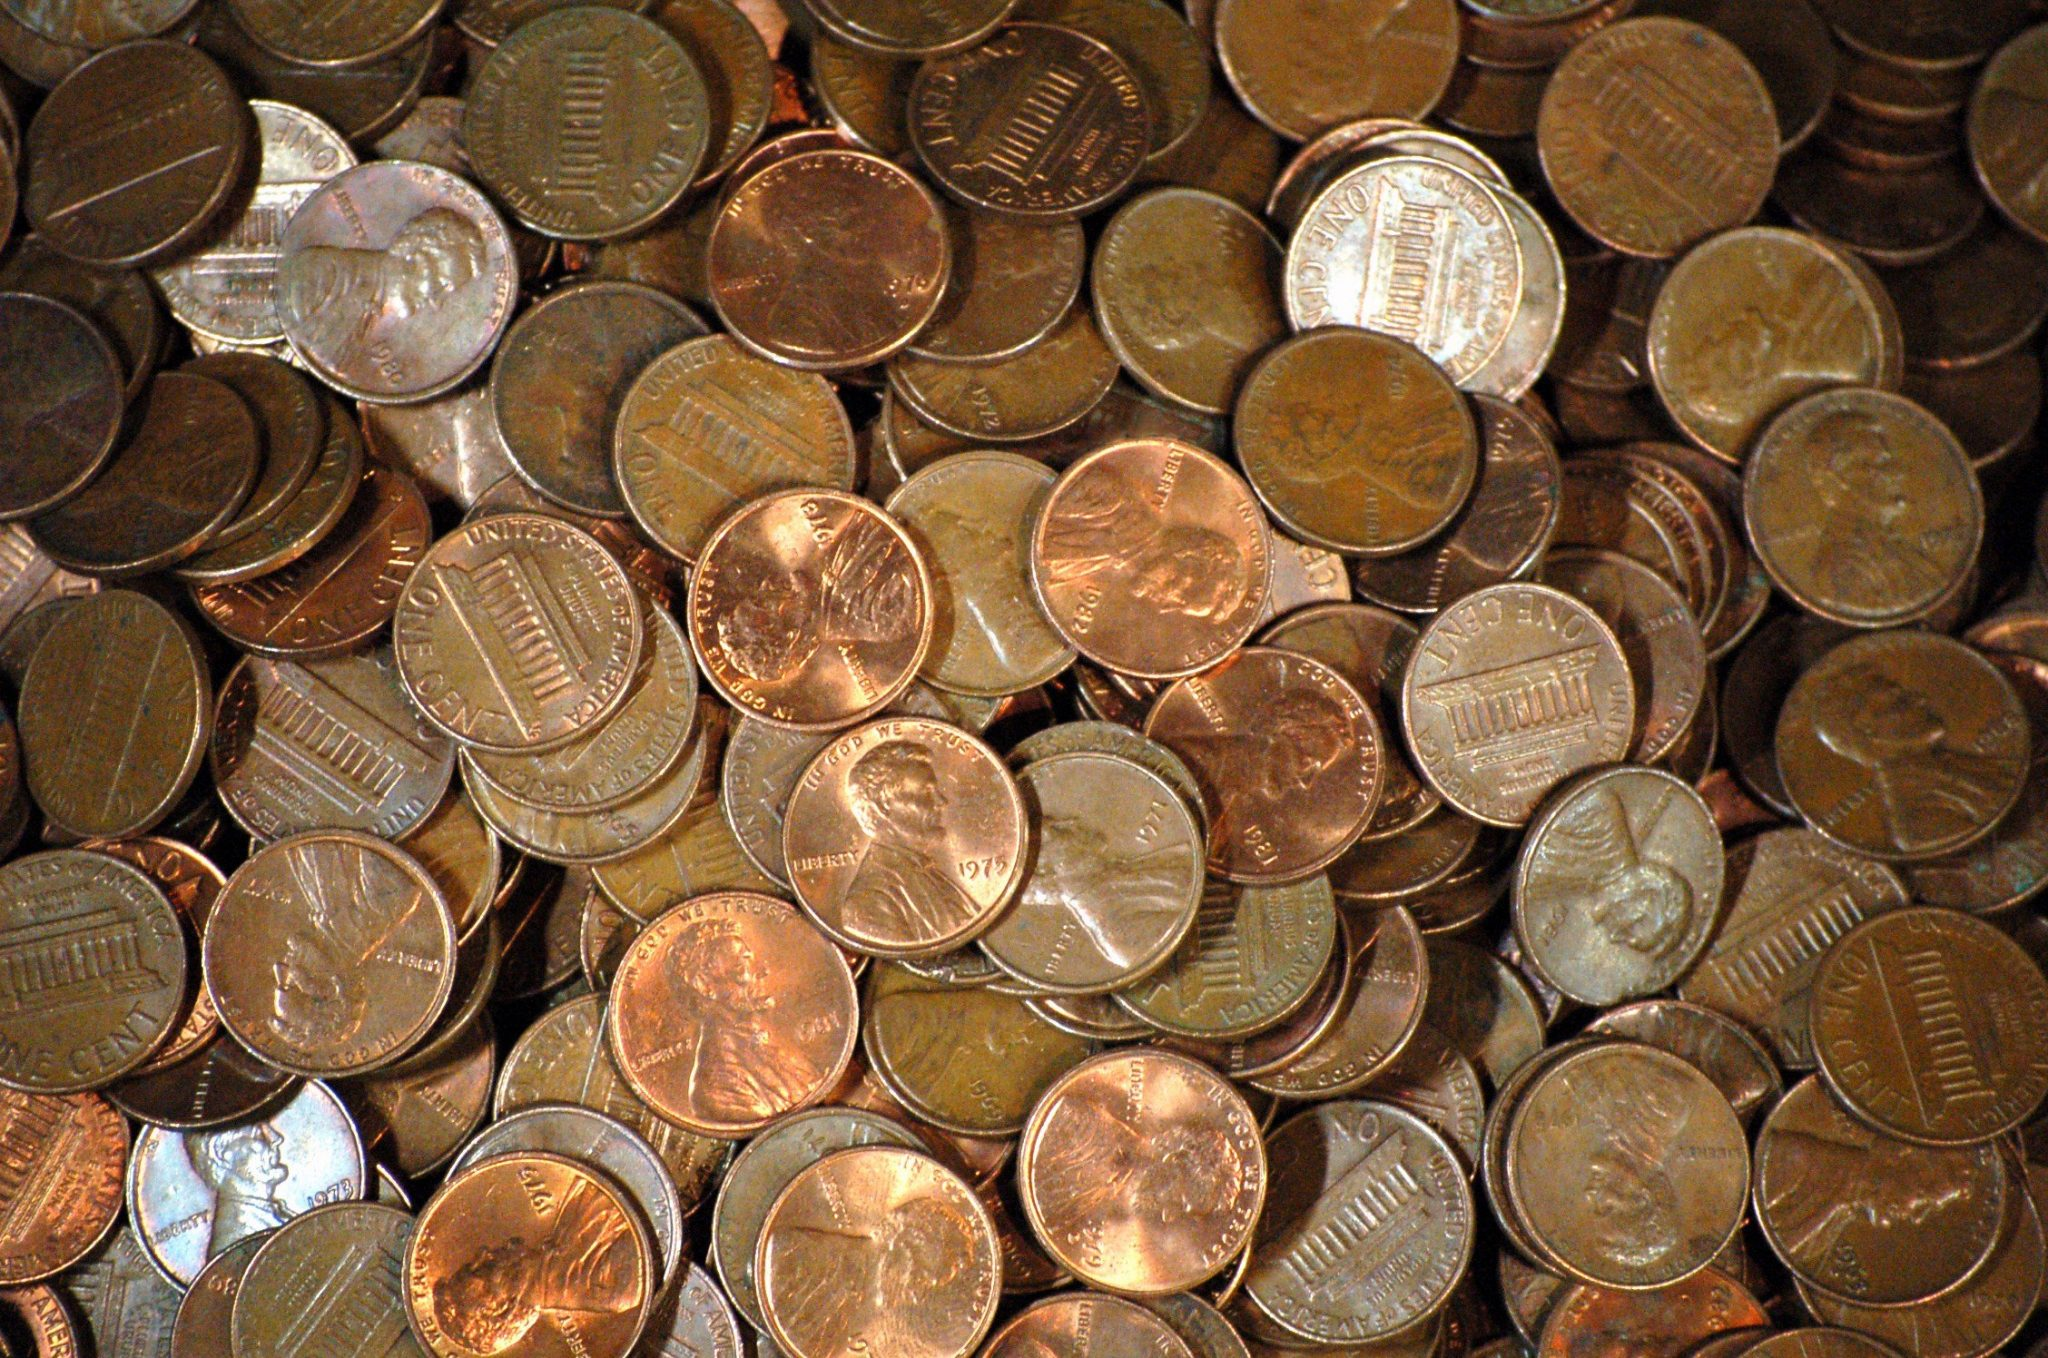 How Many Pennies Per Pound